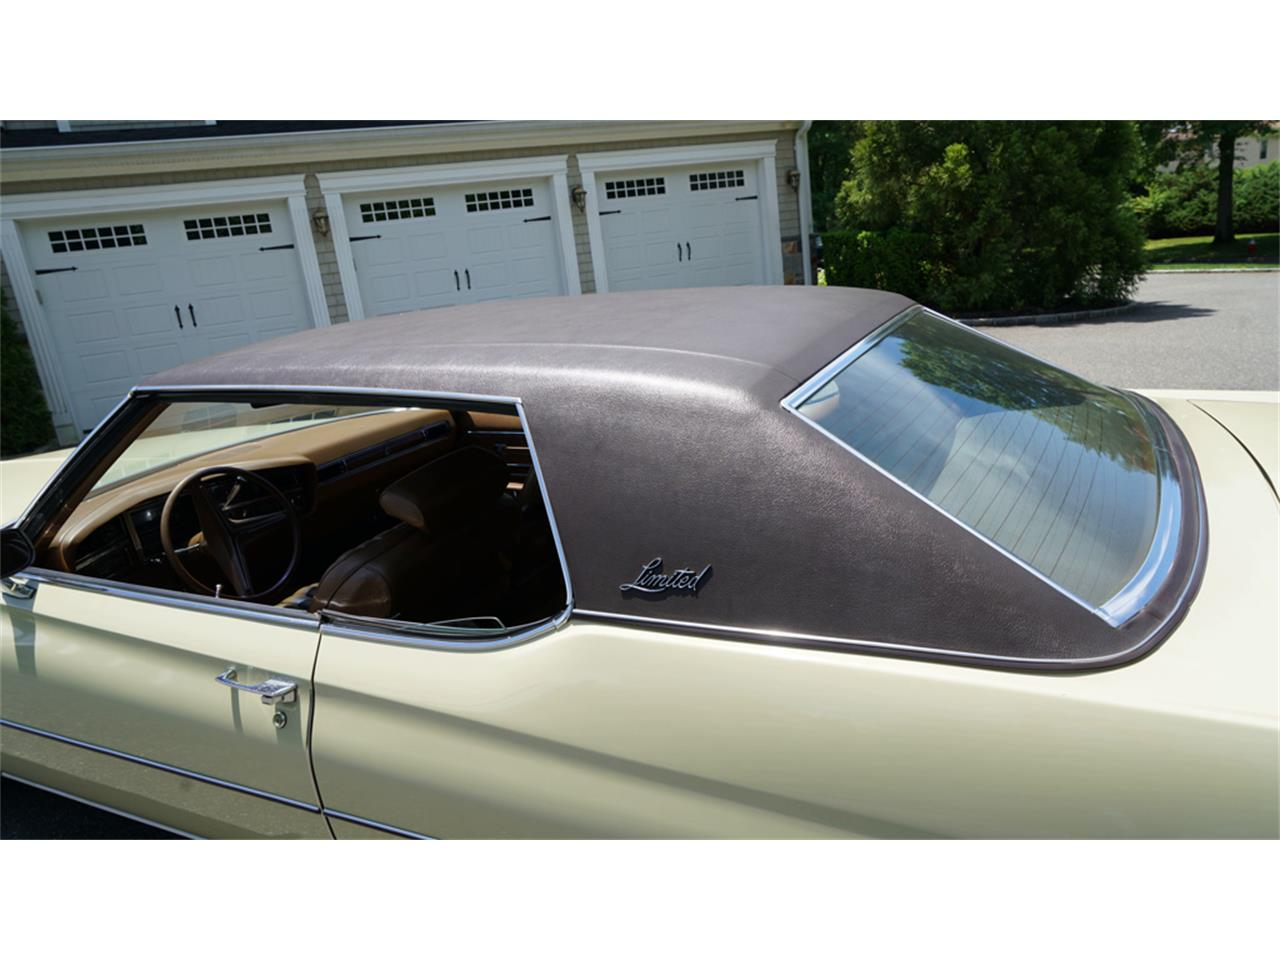 Large Picture of Classic '72 Buick Electra 225 located in Old Bethpage New York - $32,500.00 - QAJE